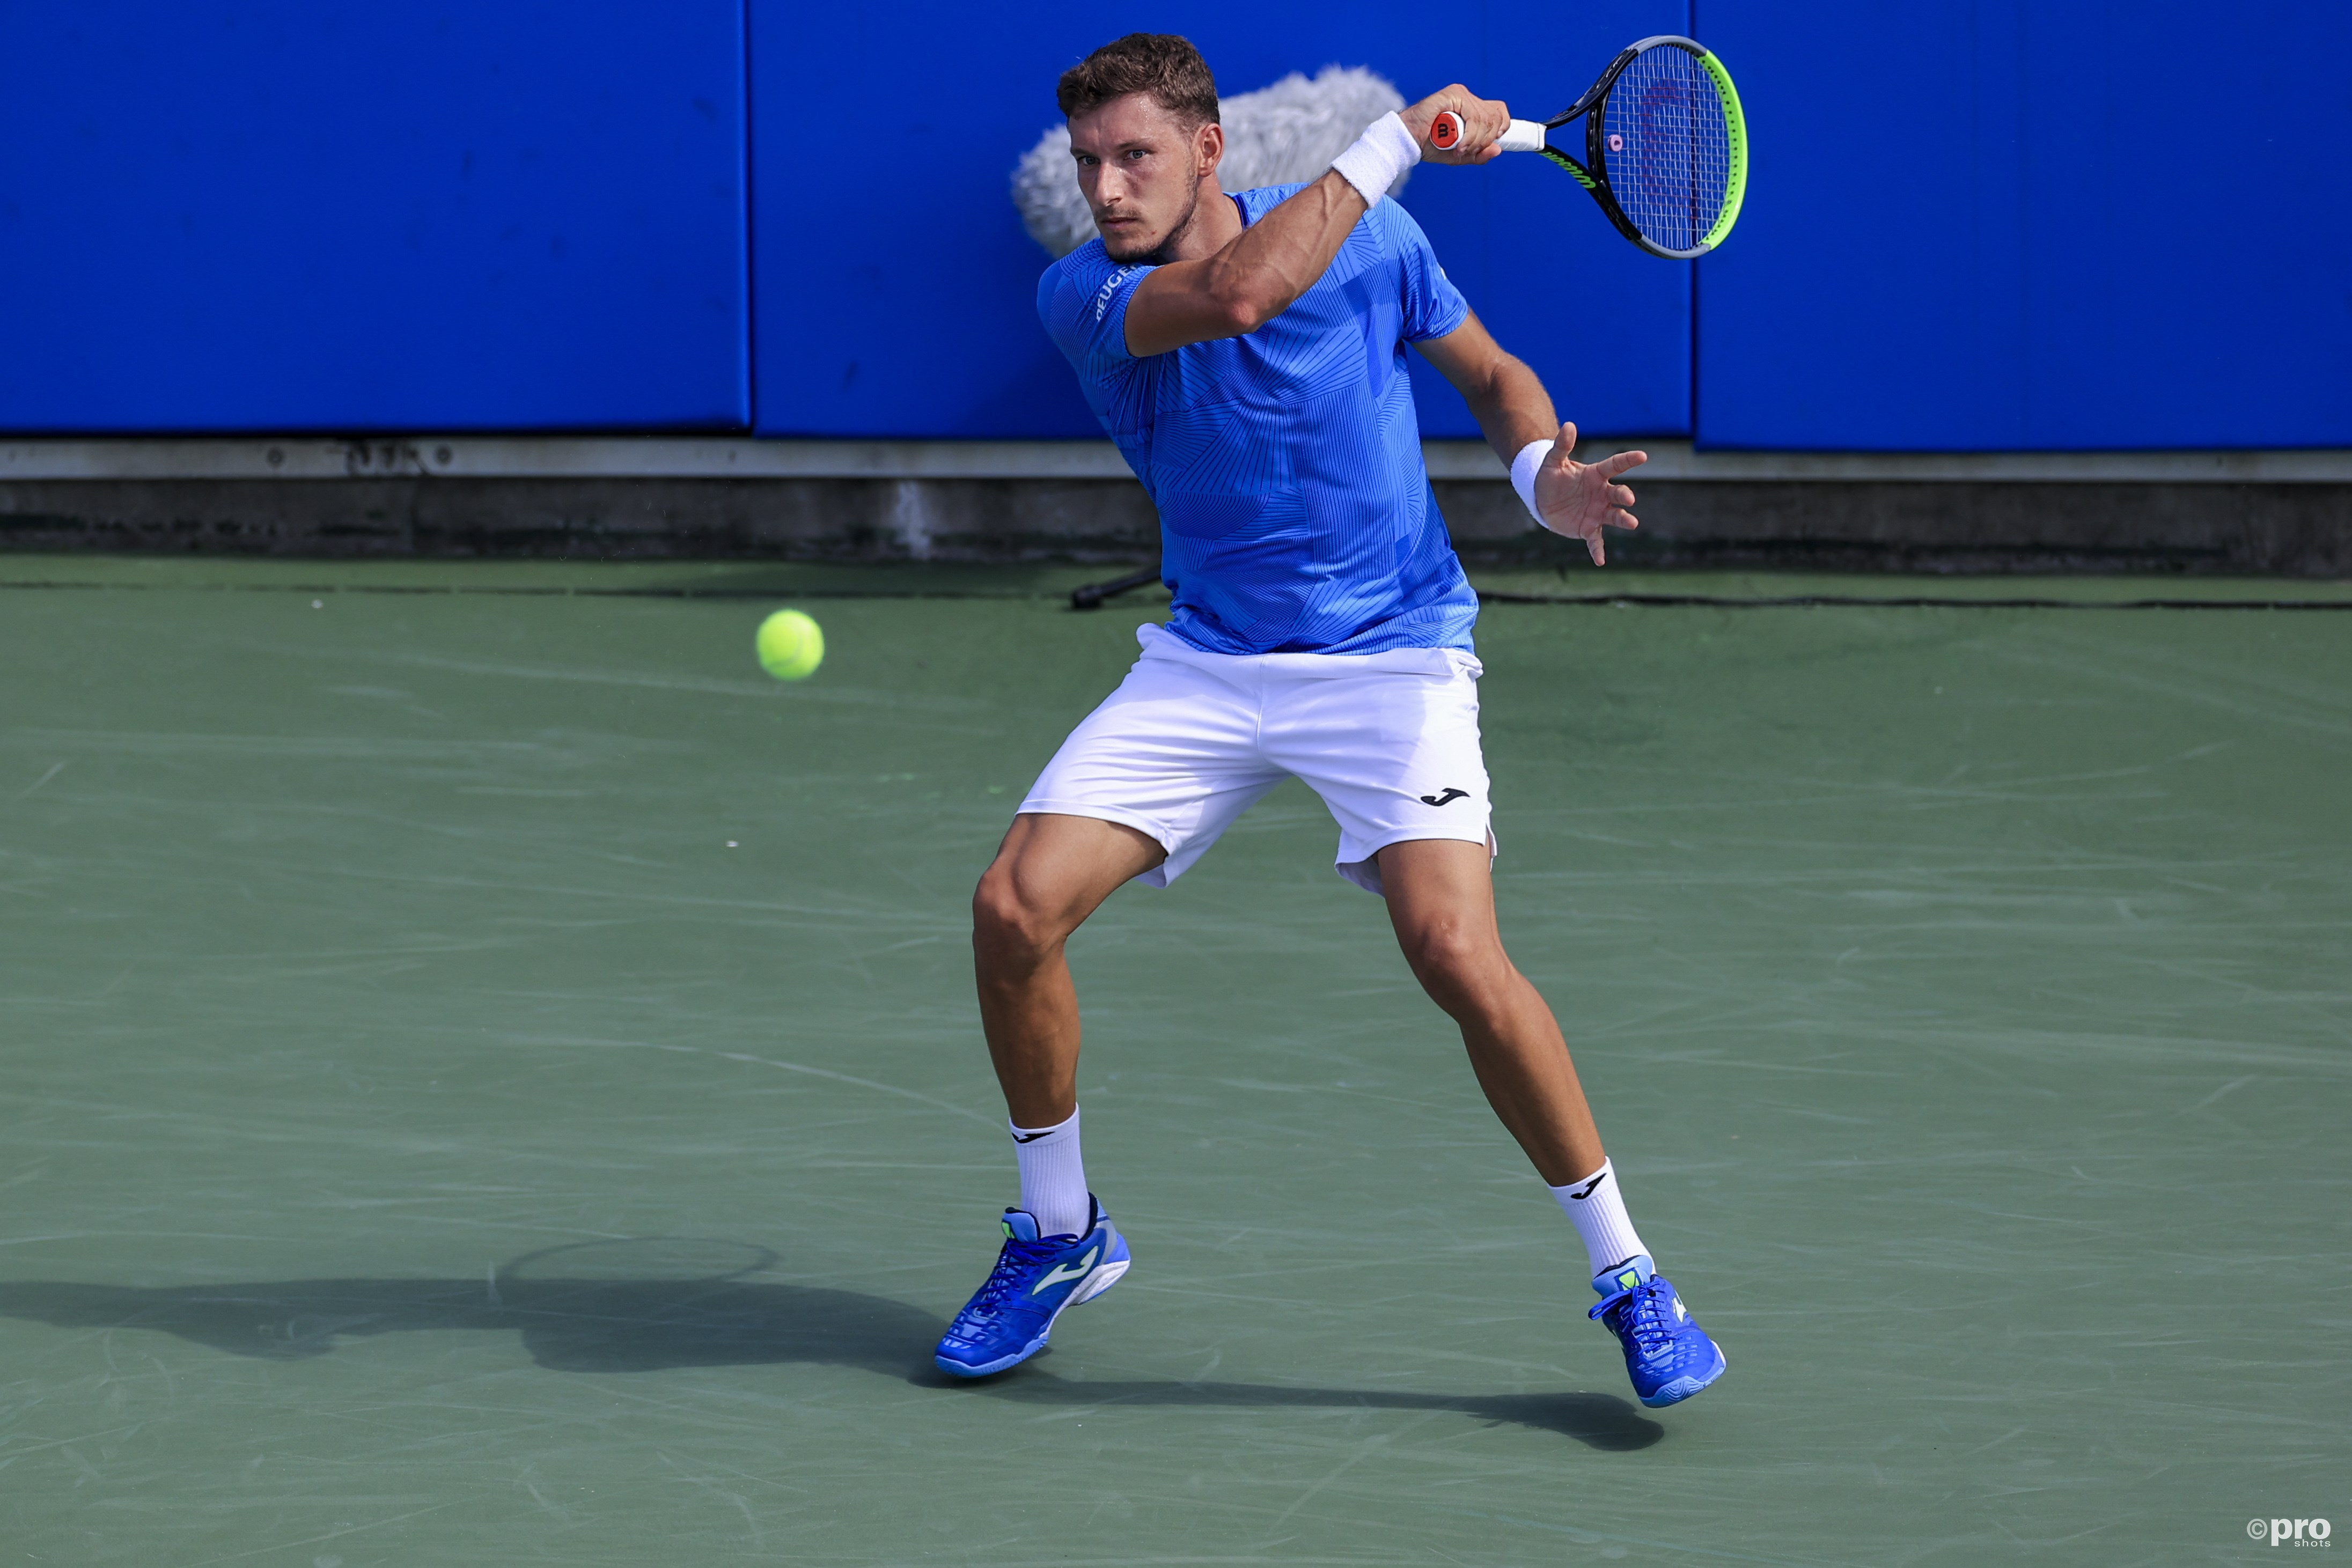 Carreno Busta and Bautista Agut to lead Spain in Davis Cup Finals